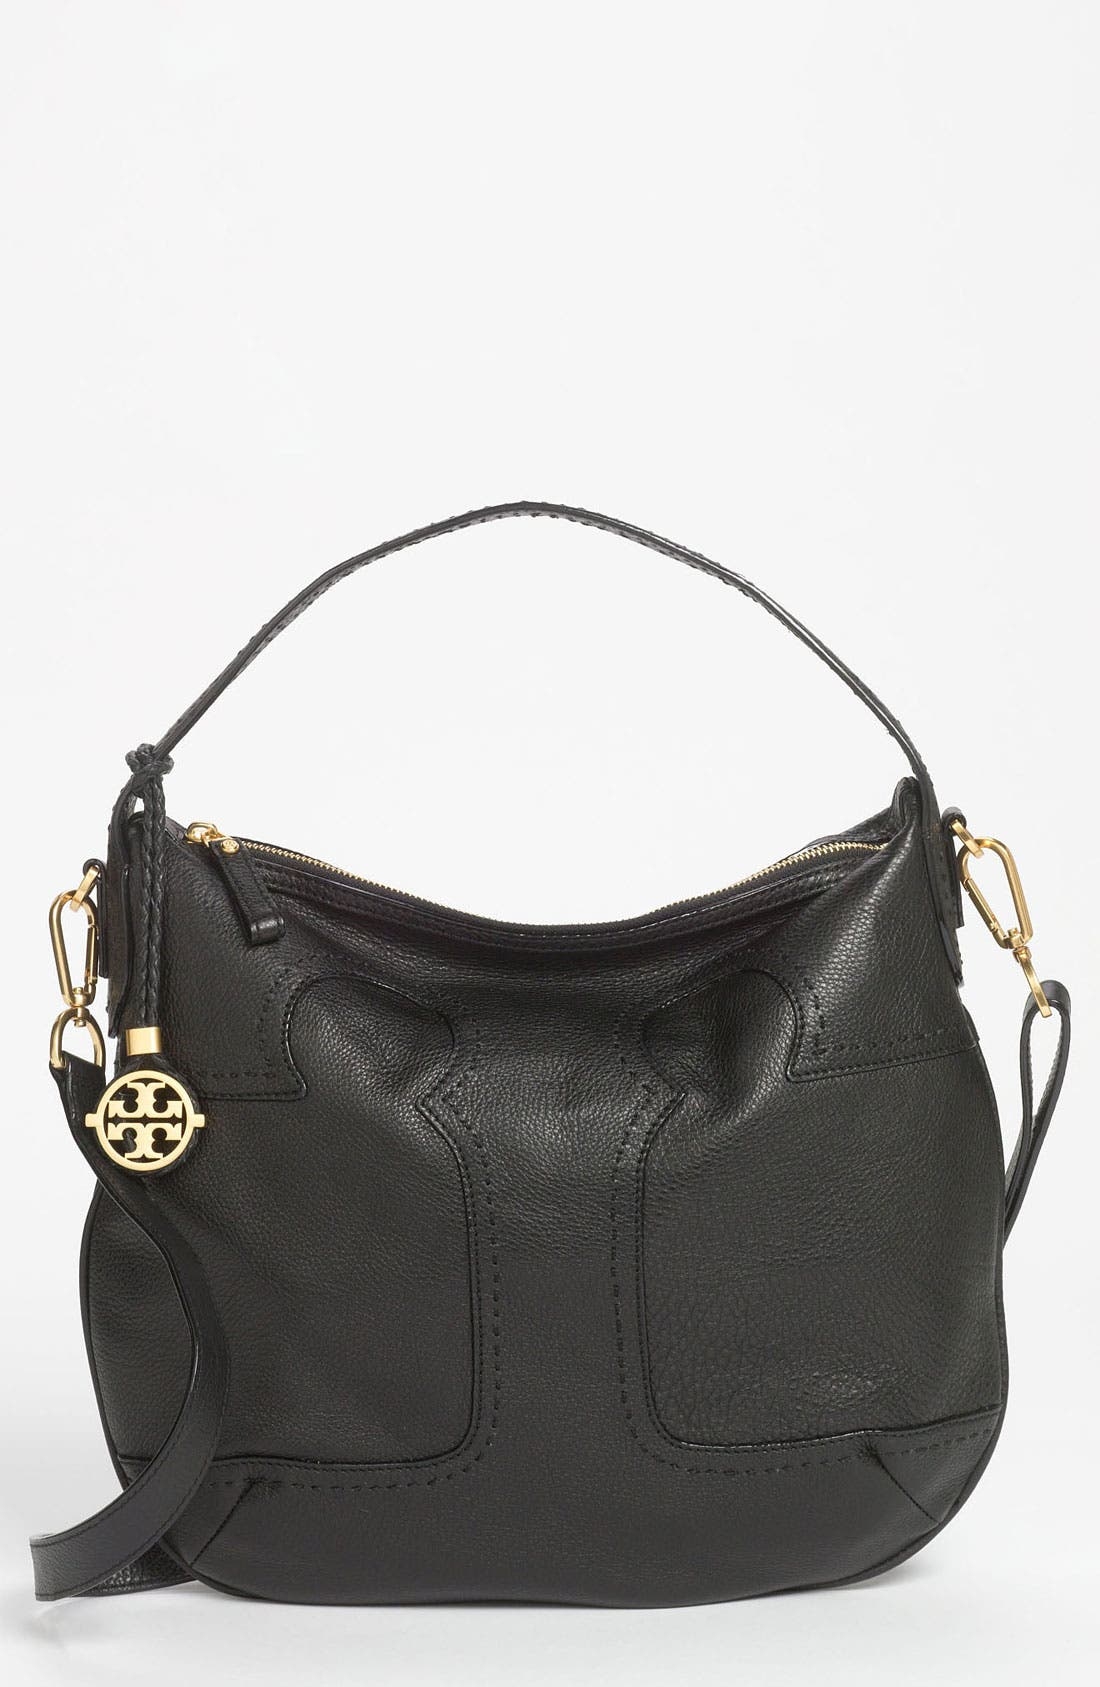 Alternate Image 1 Selected - Tory Burch 'Amalie' Leather Hobo